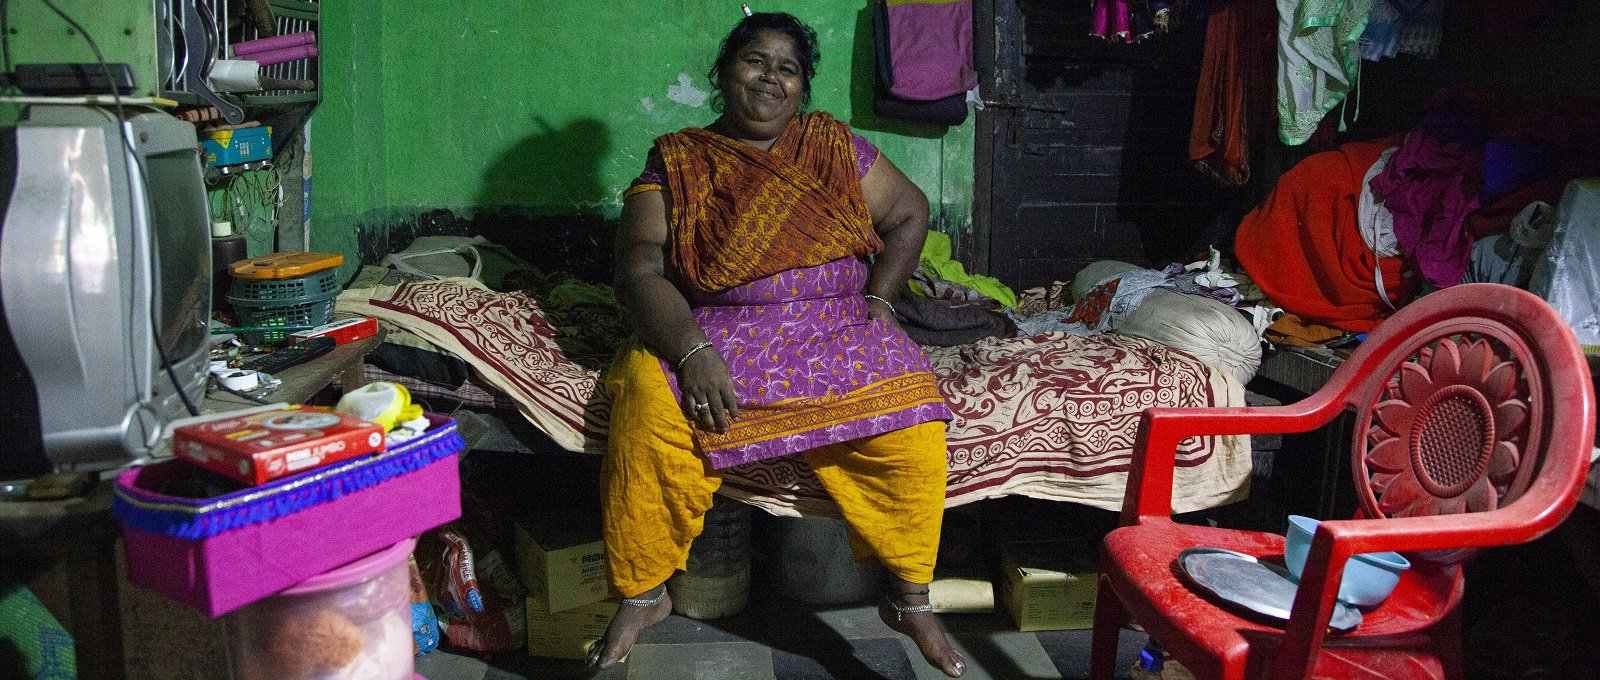 Between high rates of HIV/AIDS and punitive new trafficking laws, India's sex workers are struggling to assert their humanity